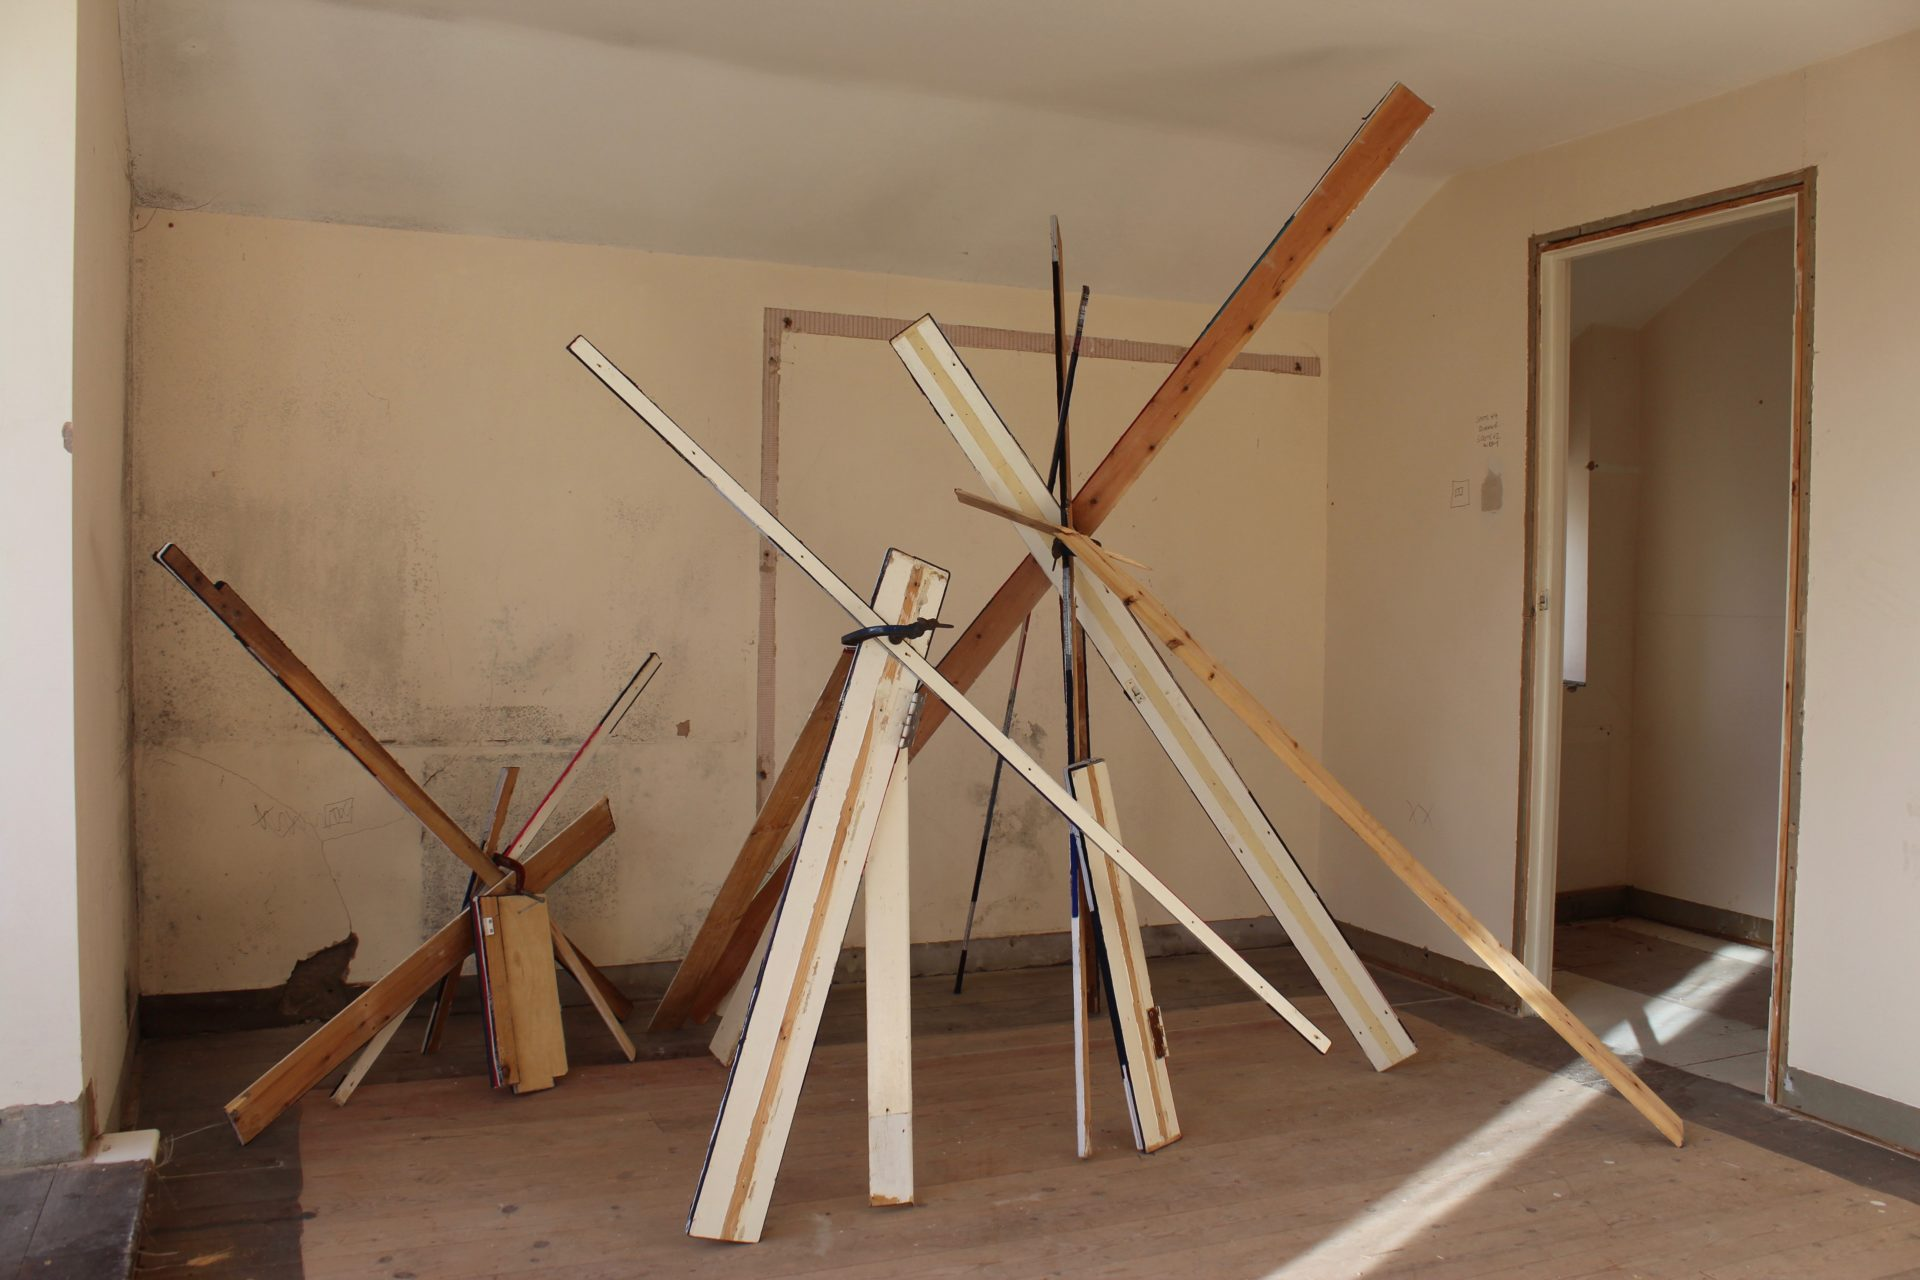 Long planks of wood positioned in a room